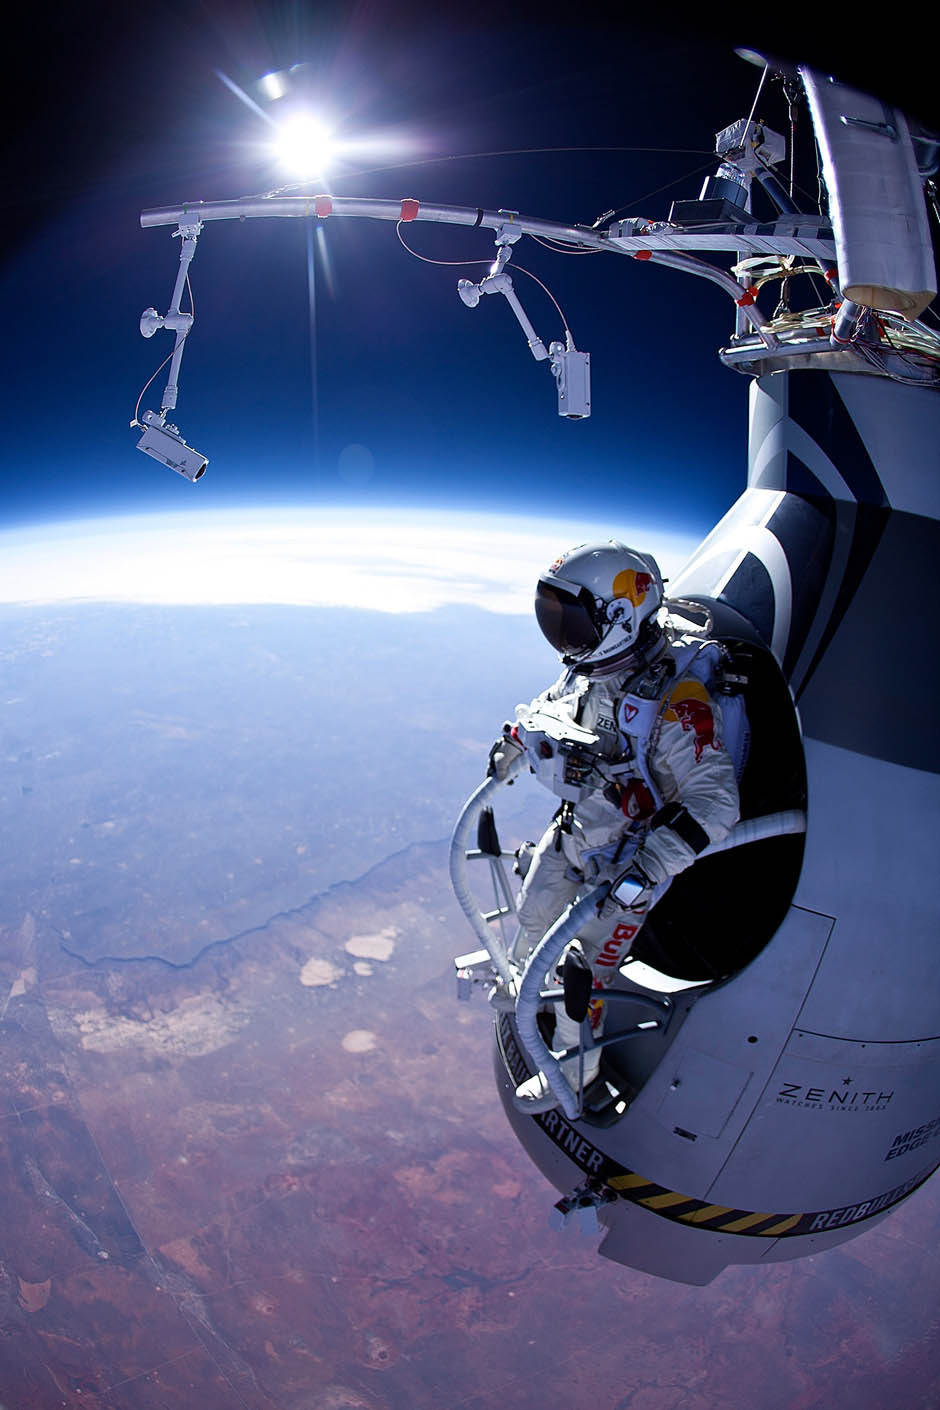 Felix Baumgartner on track for highest ever free-fall jumpStunt co-ordinator, skydiver, helicopter pilot and B.A.S.E. jumper Felix Baumgartner is on track to break four world records by jumping out of a balloon 36.5 kilometres above the earth.Austrian Baumgartner conducted the first manned test flight for Red Bull Stratos on Thursday in Roswell, New Mexico. In this test he reach the altitude 21,800 meters (71,500 ft) and landed safely near Roswell.Red Bull Stratos is a mission to the edge of the earths atmosphere, where upon reaching altitude of 36,000 meters (120,000 ft) by helium balloon, the 41-year-old hopes to complete the highest-ever freefall jump made by a human by plunging out of a specially designed balloon in the stratosphere.Daredevil Baumgartner will also attempt to break the speed of sound in the free-fall to the ground. (Photo: Jay Nemeth/Red Bull via Getty Images)